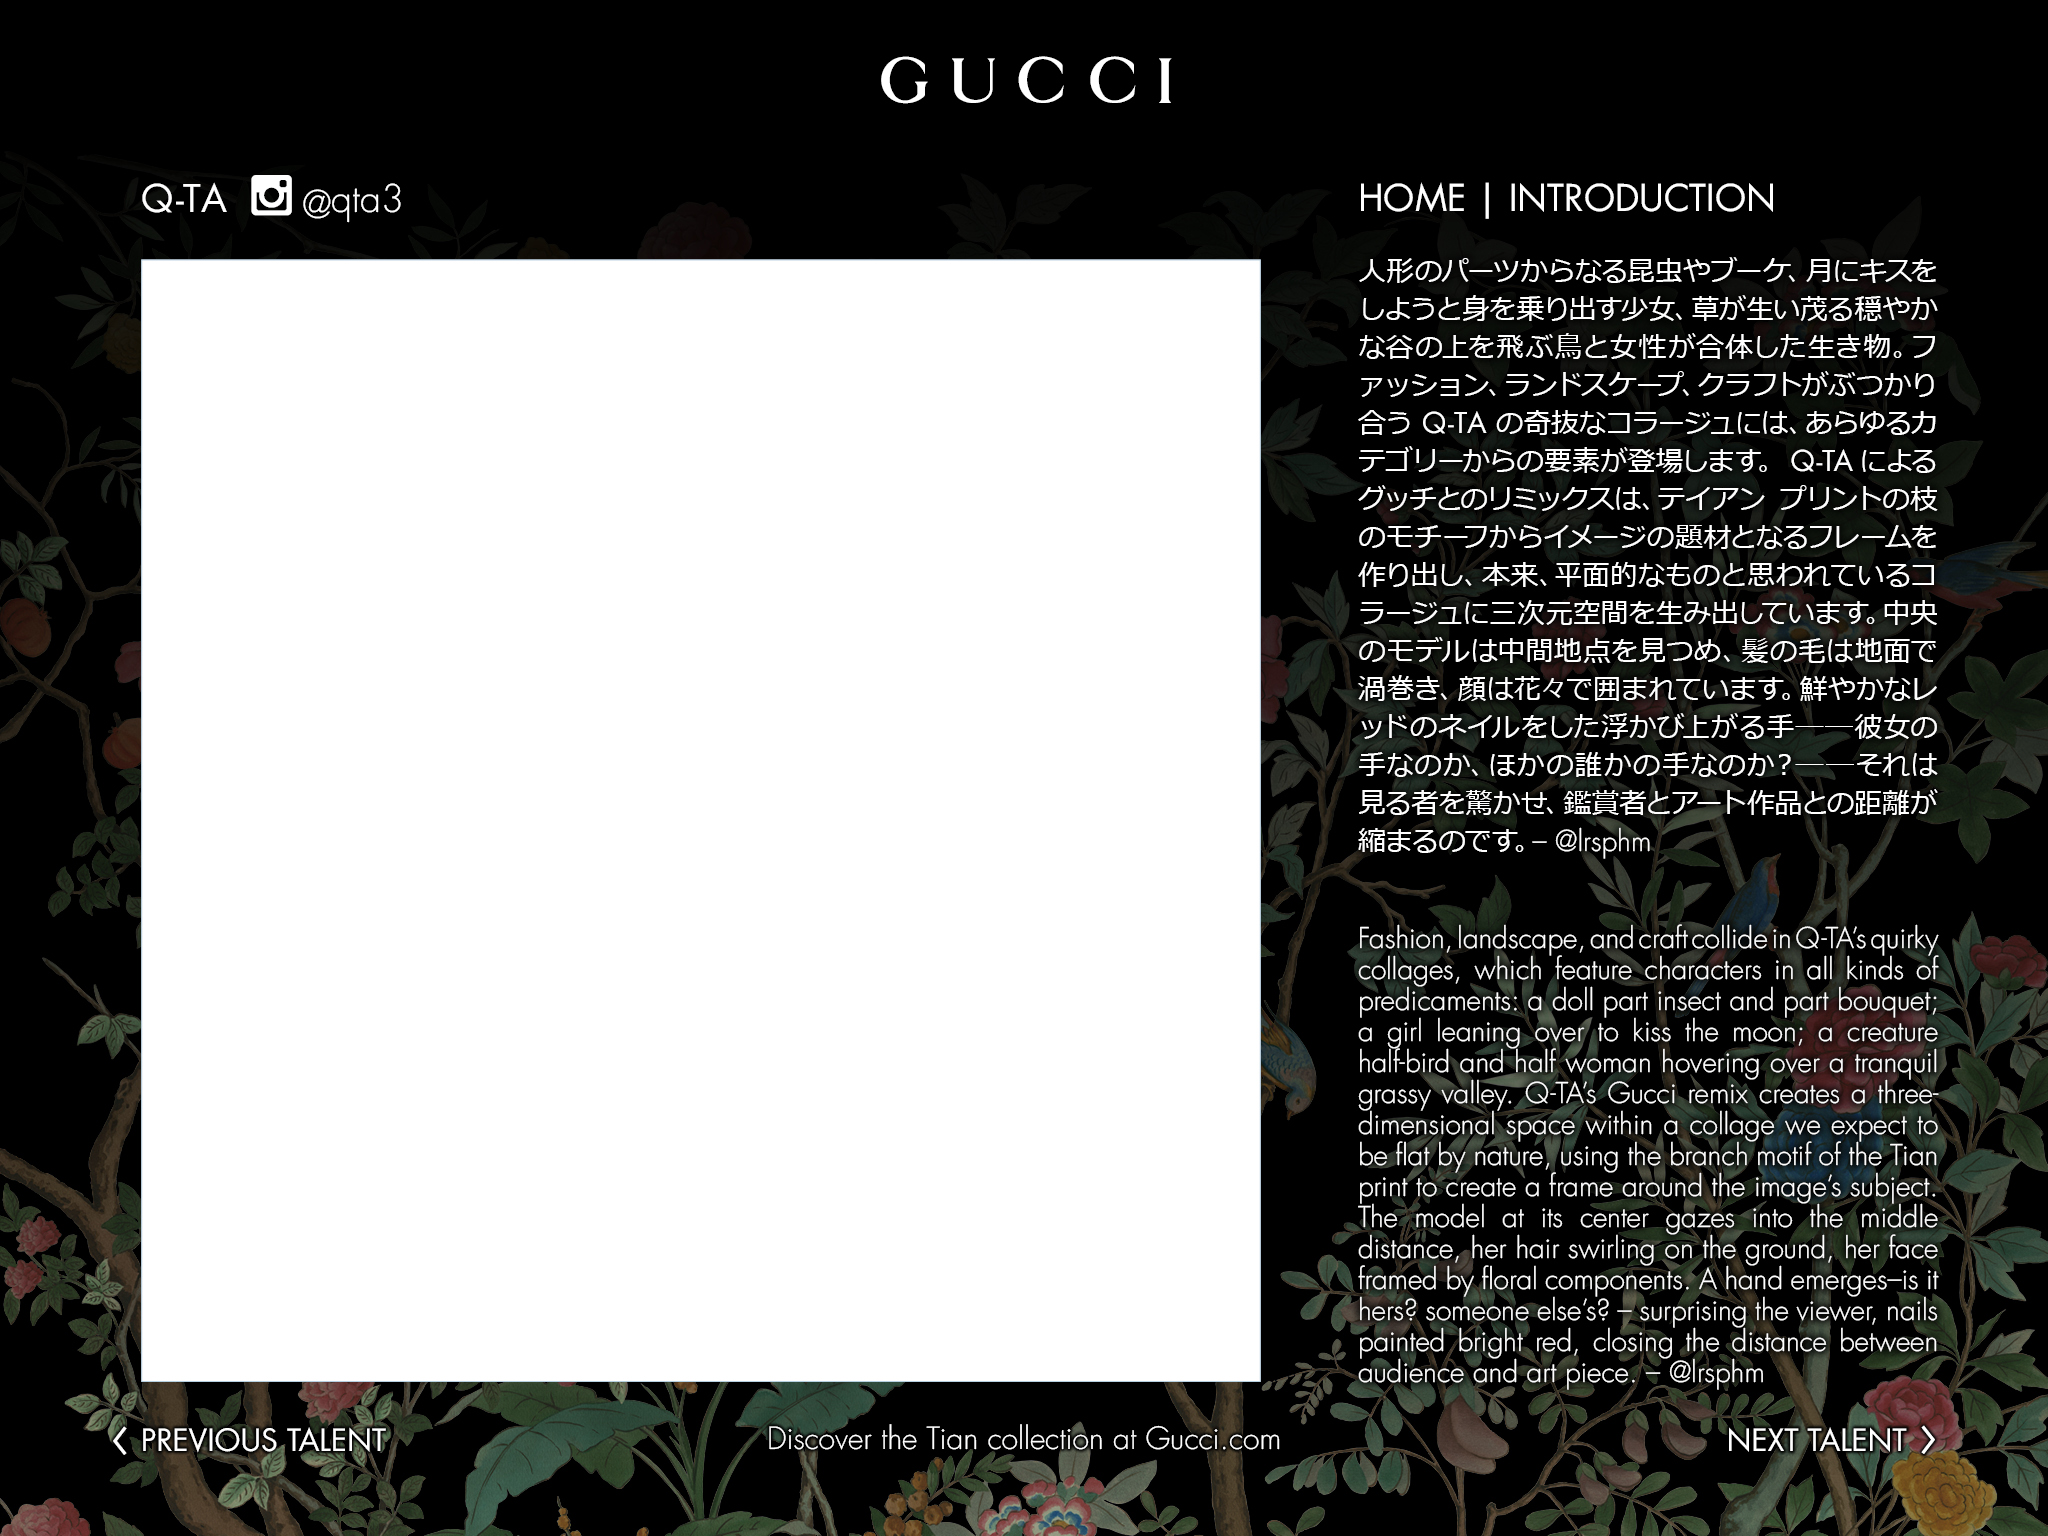 About The Artist >> #guccigram-tian